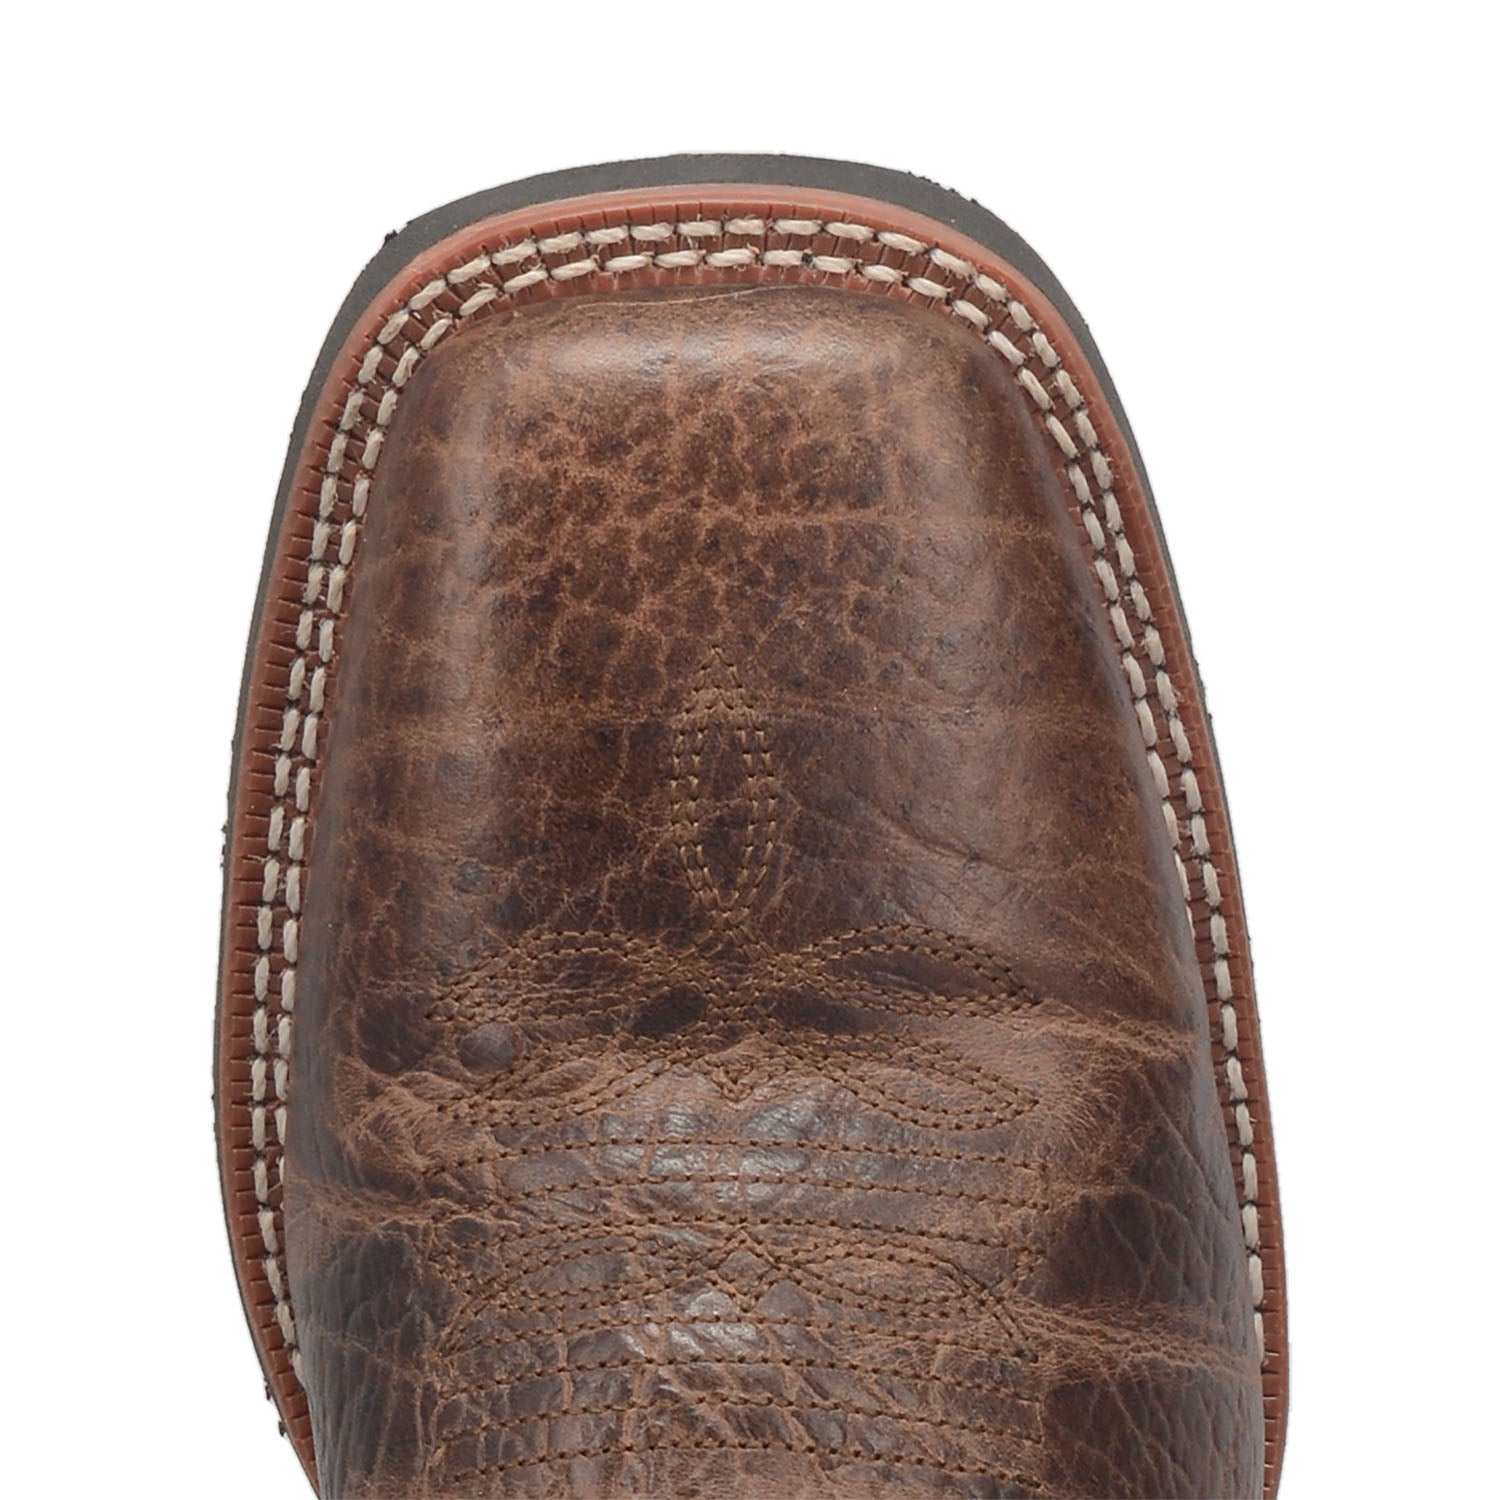 BISBEE LEATHER BOOT 28111096676394